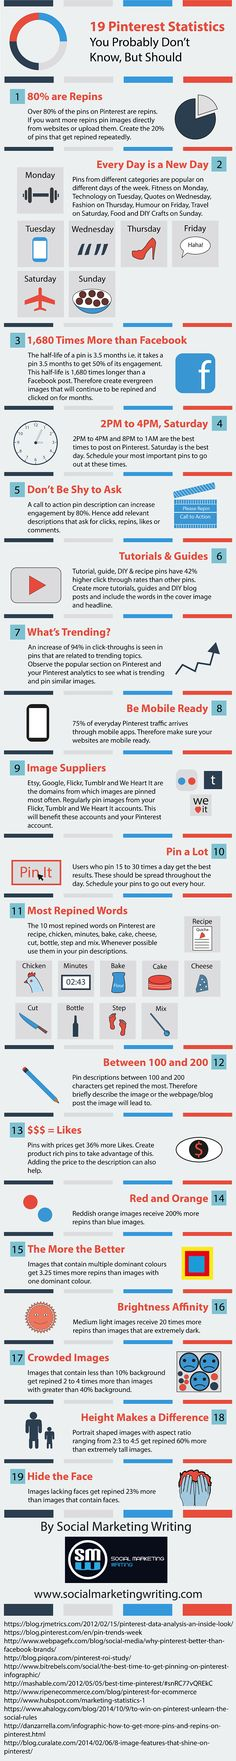 19 Pinterest Statistics You Probably Don't Know, But Should #infographic